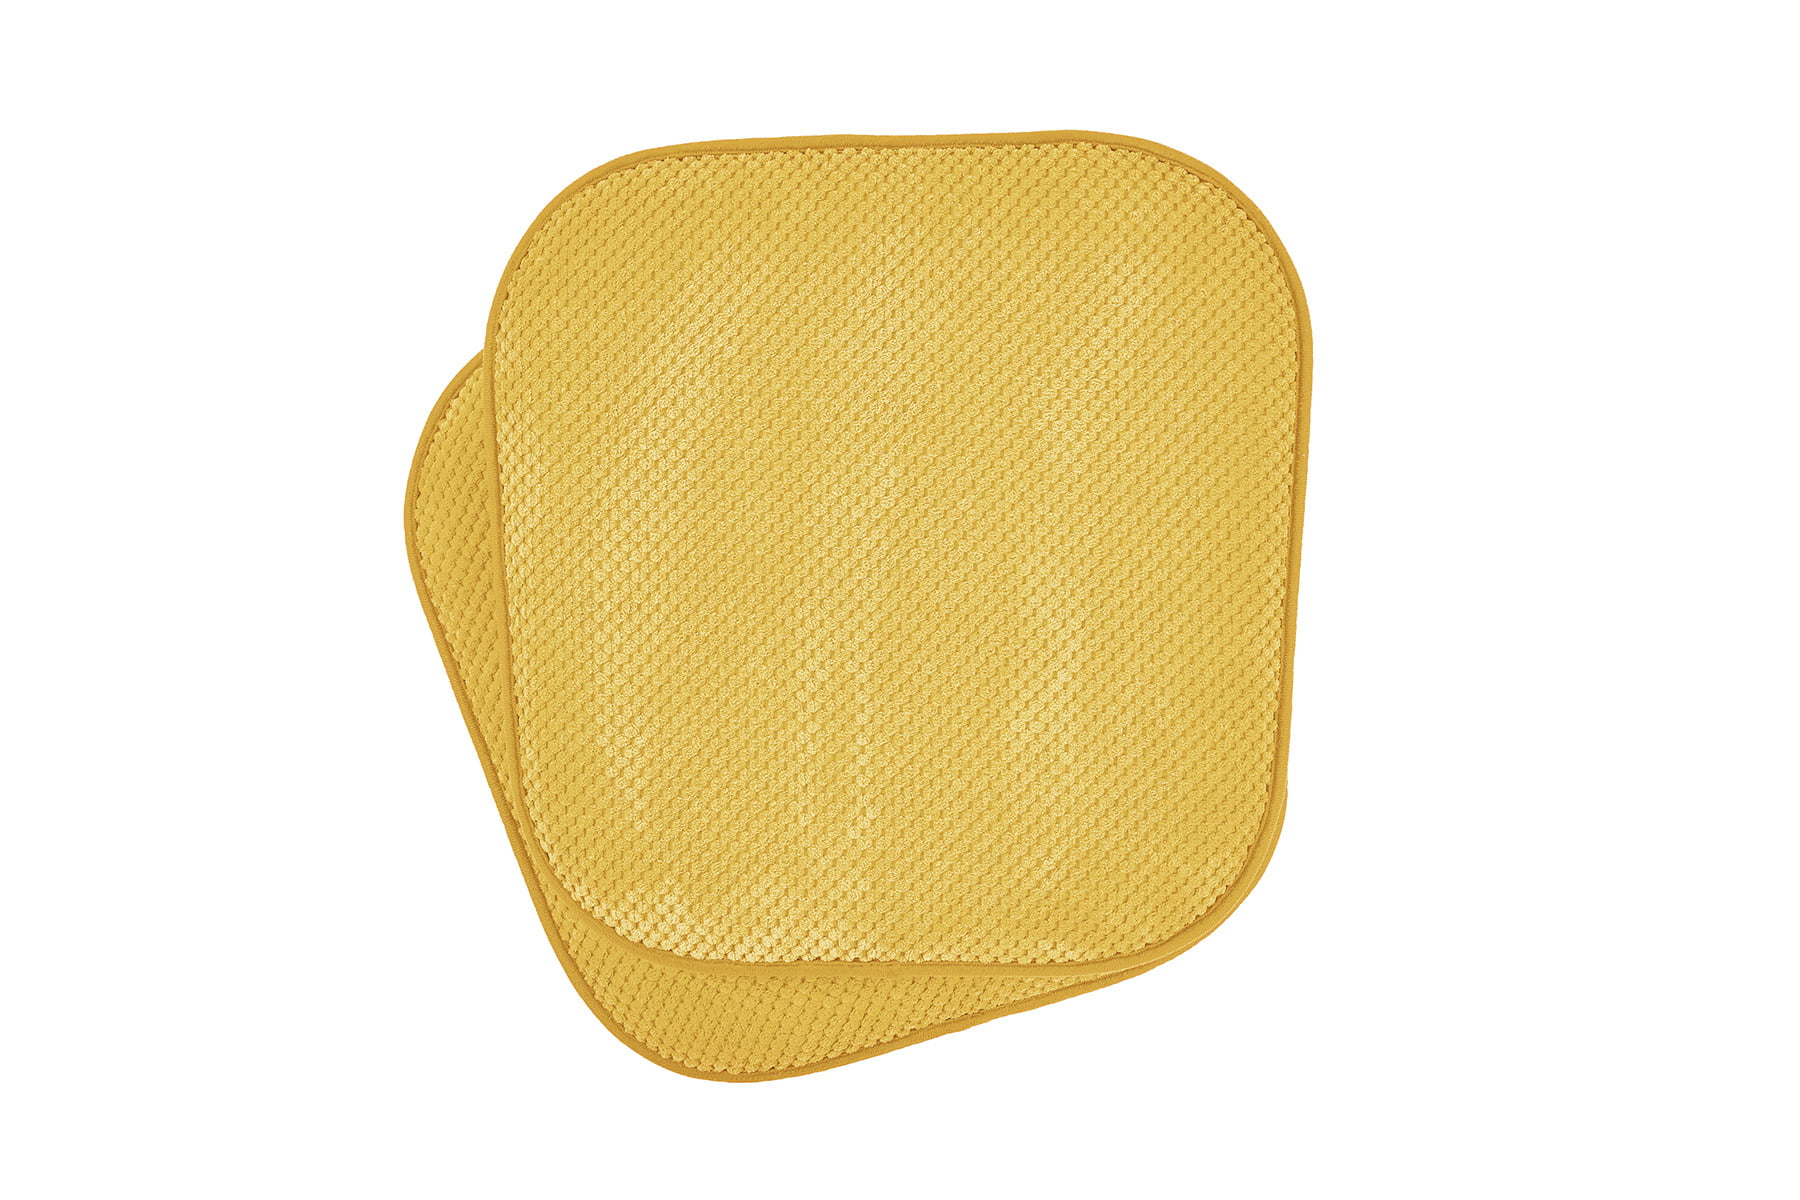 Dining Room Seat Chair Cushions Gold, Memory Foam For Dining Room Chairs